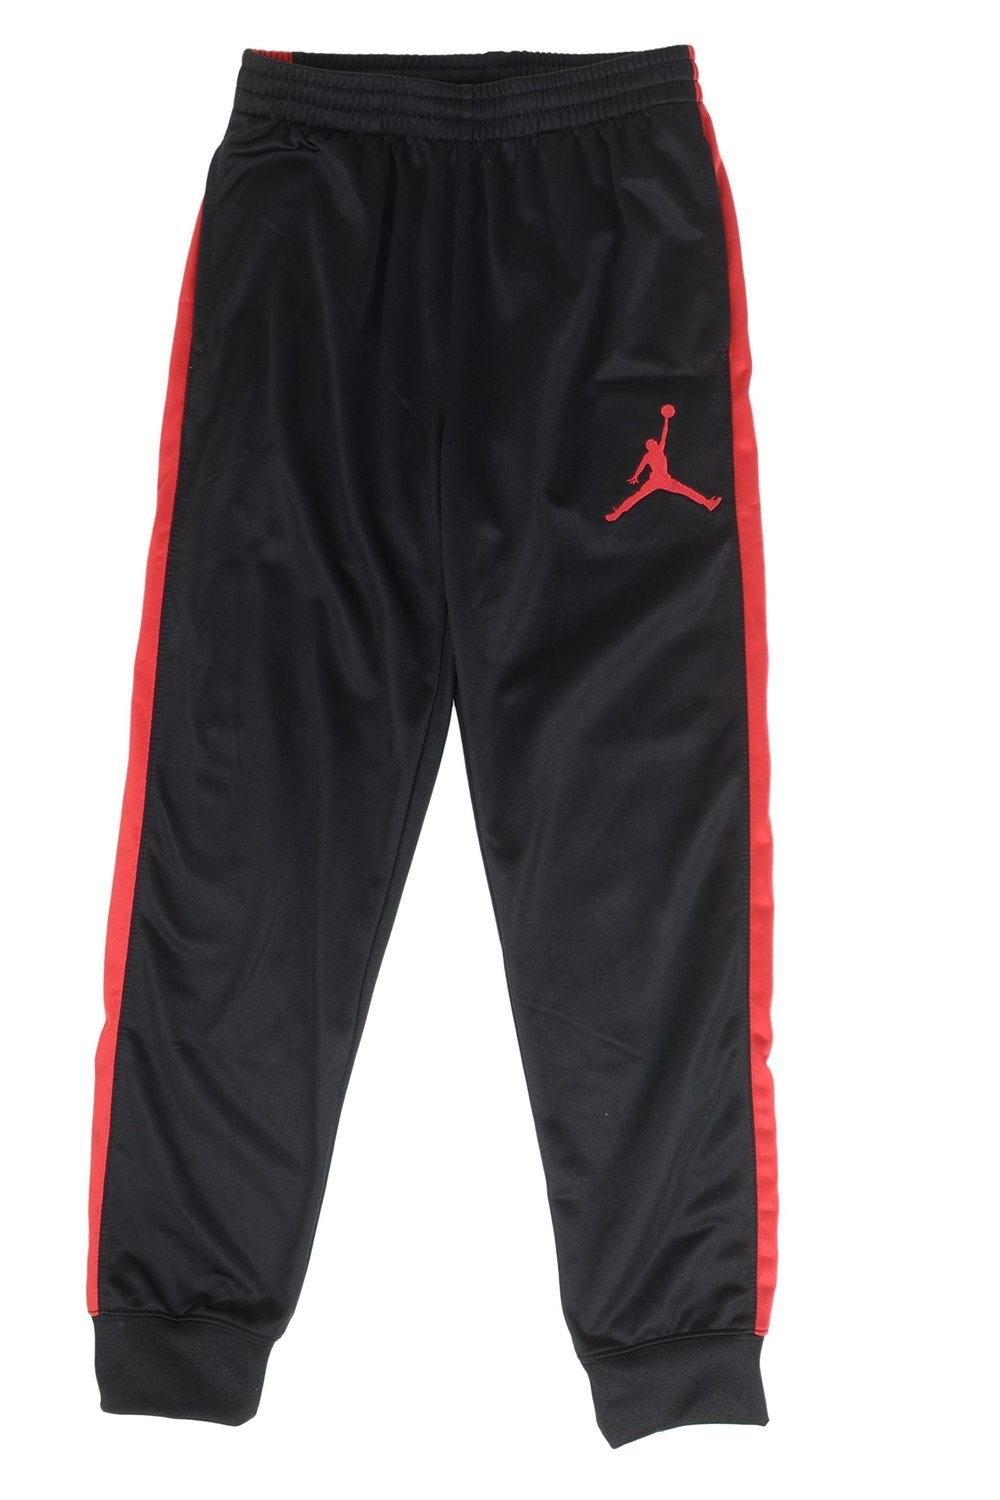 , Black//Red Jordan Big Boys Sport Skinny Jogger Pants 8-10YRS Small